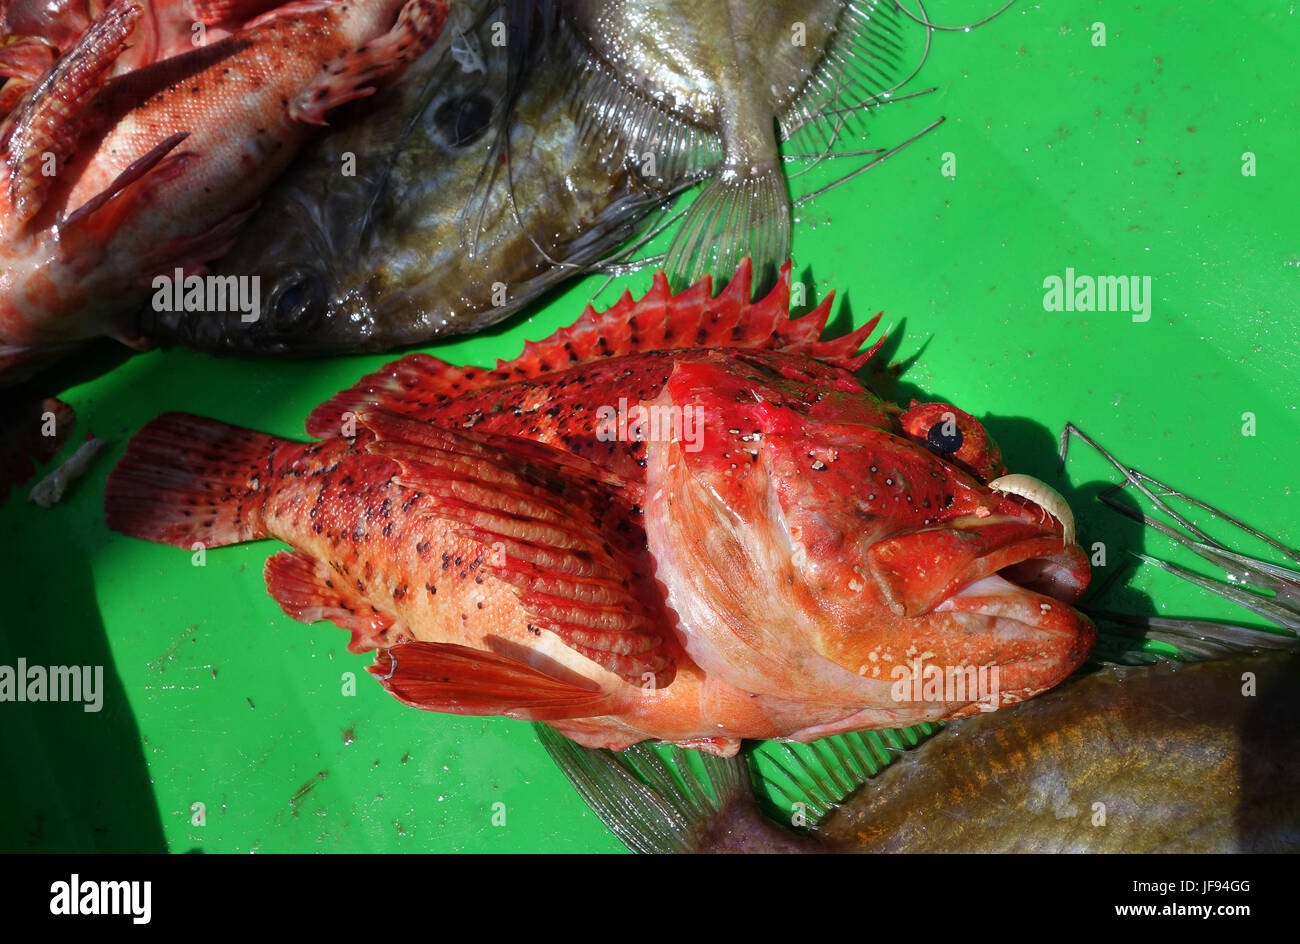 Red Snapper Fish at Puerto de Vega in Asturias in northern Spain Stock Photo